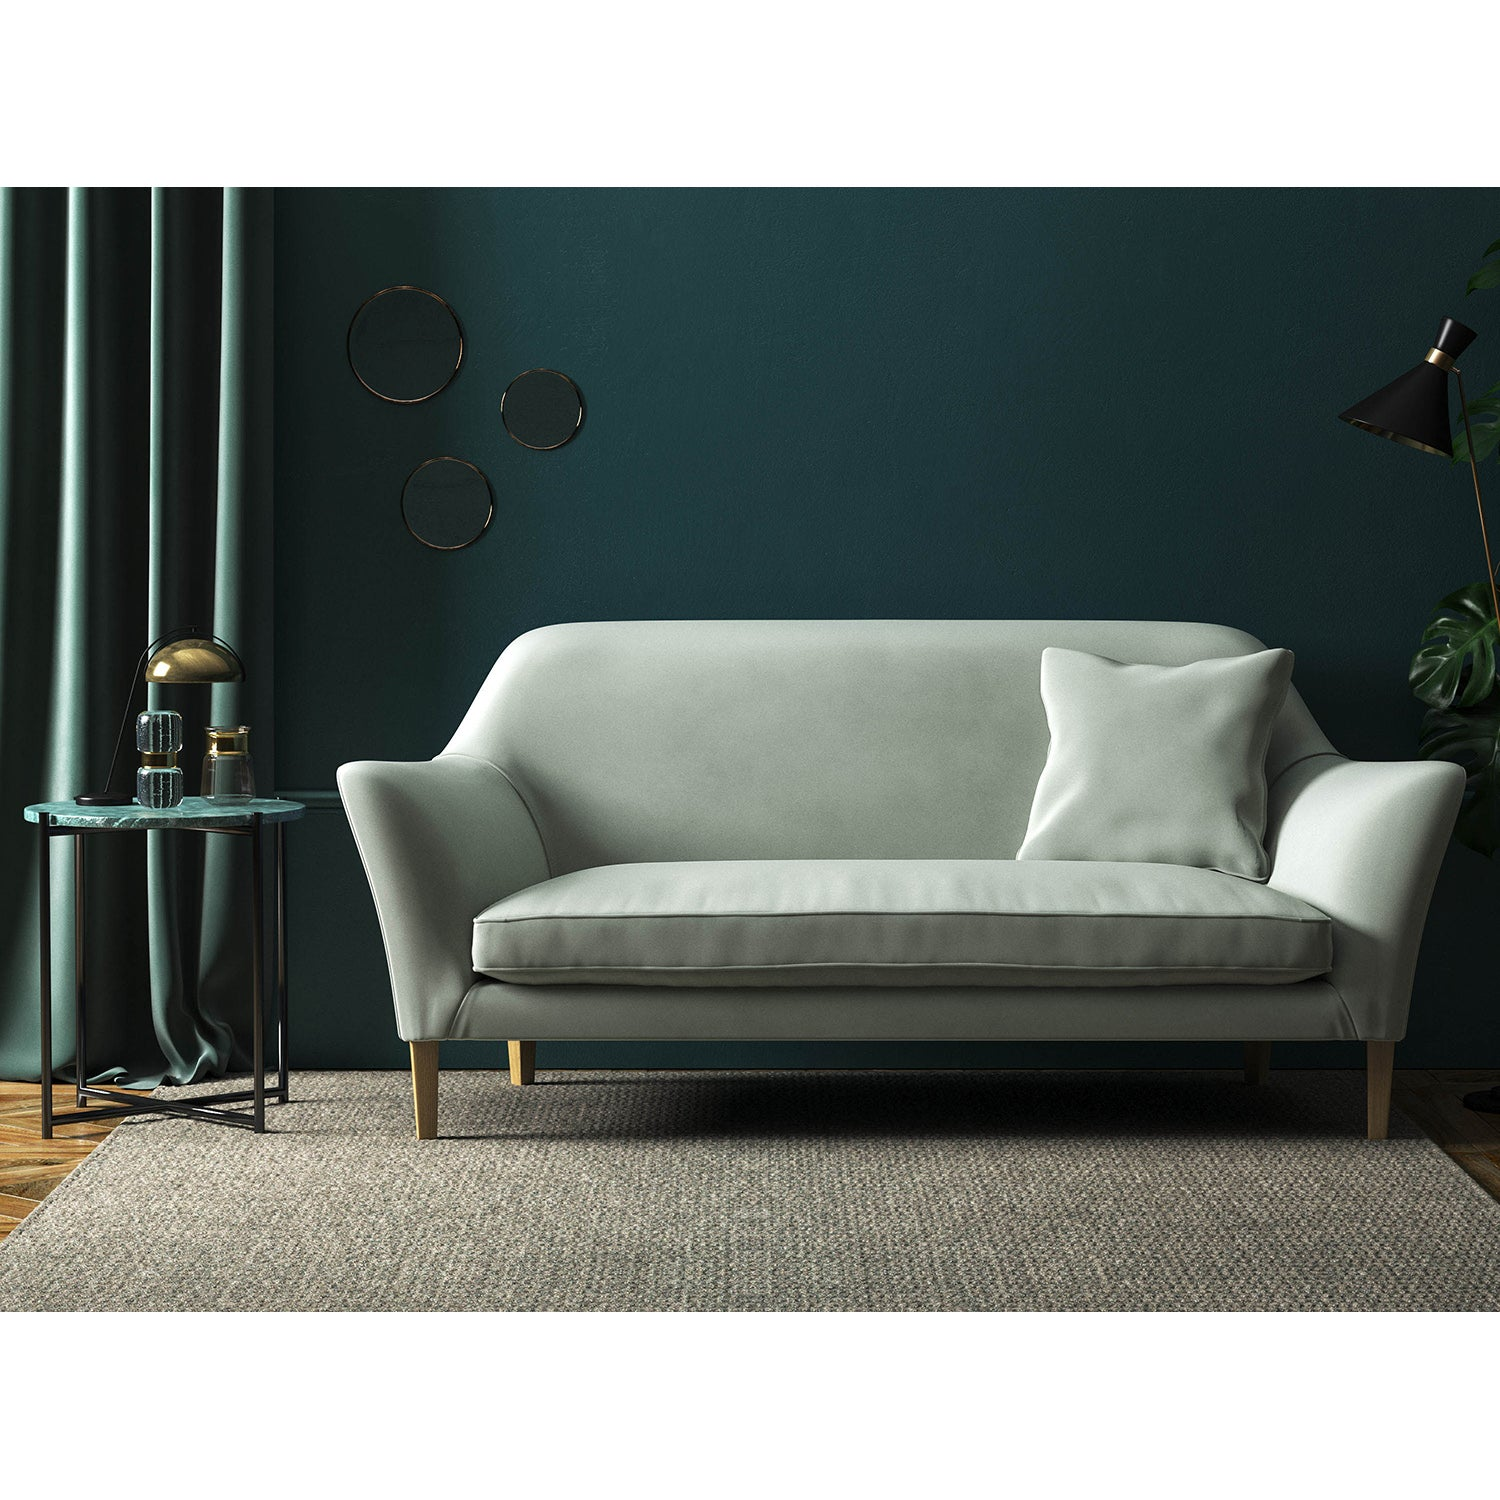 Sofa in a luxury light grey velvet upholstery fabric for contract and domestic upholstery